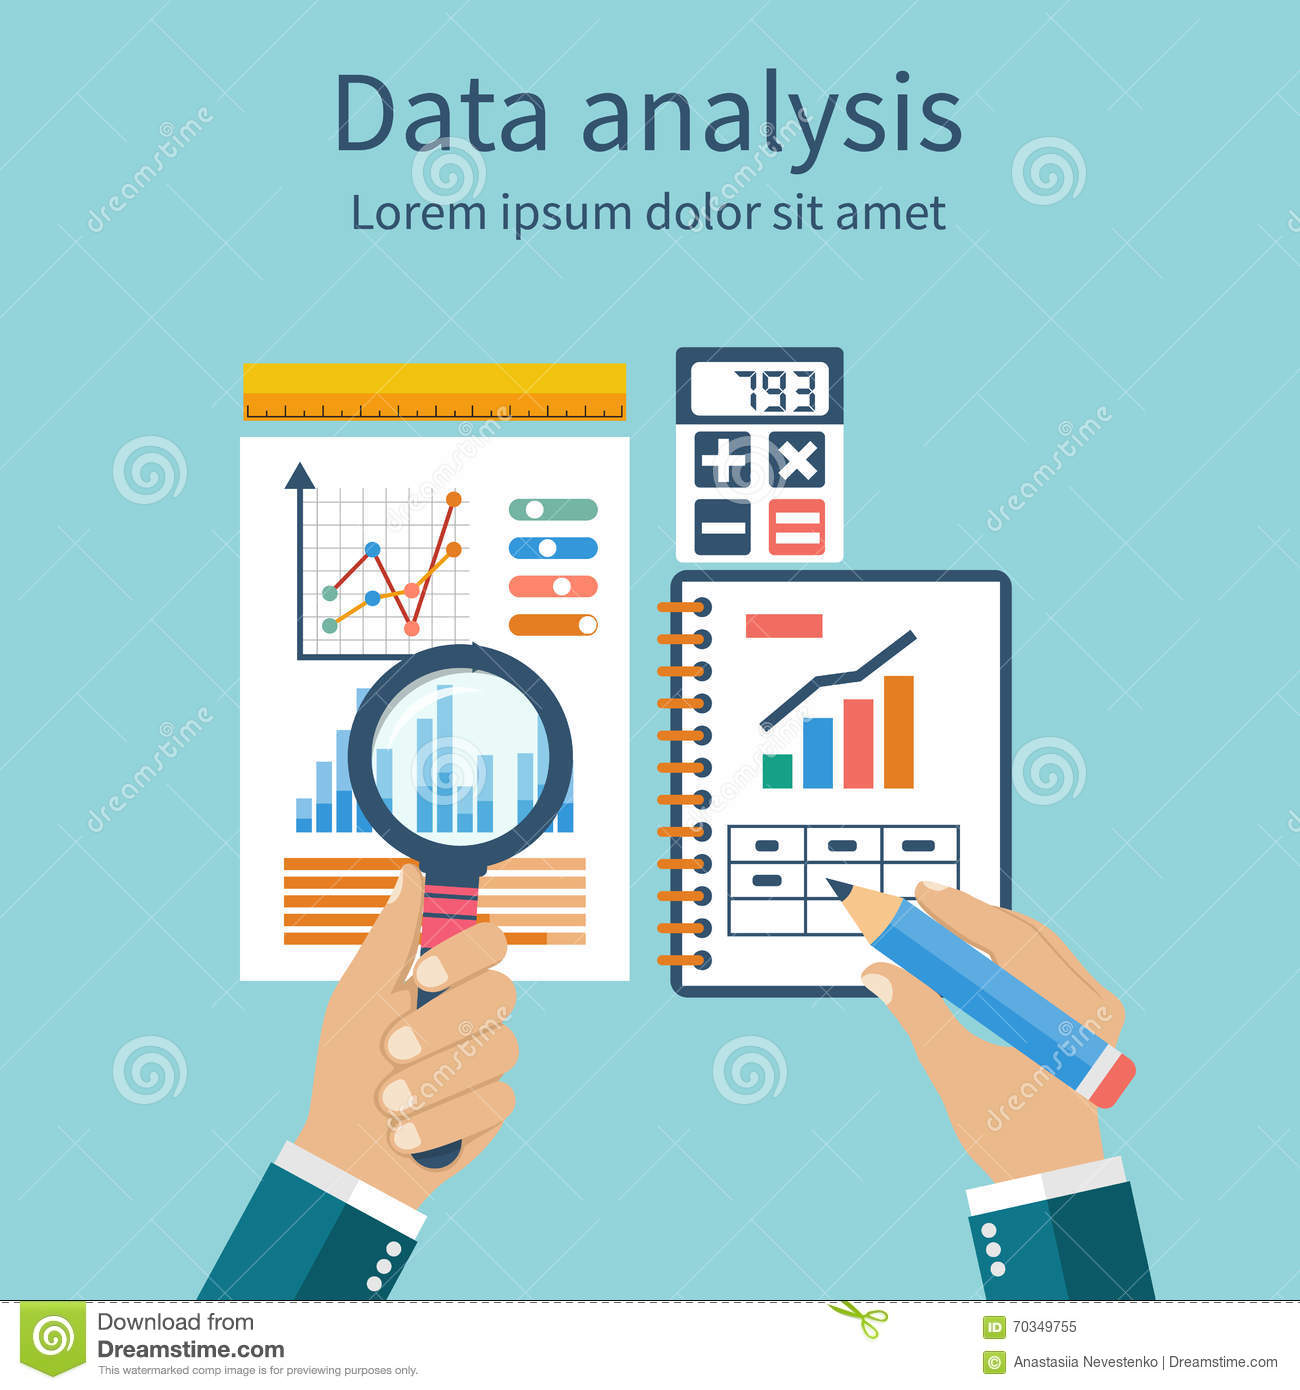 Research Design and Application for Data and Analysis